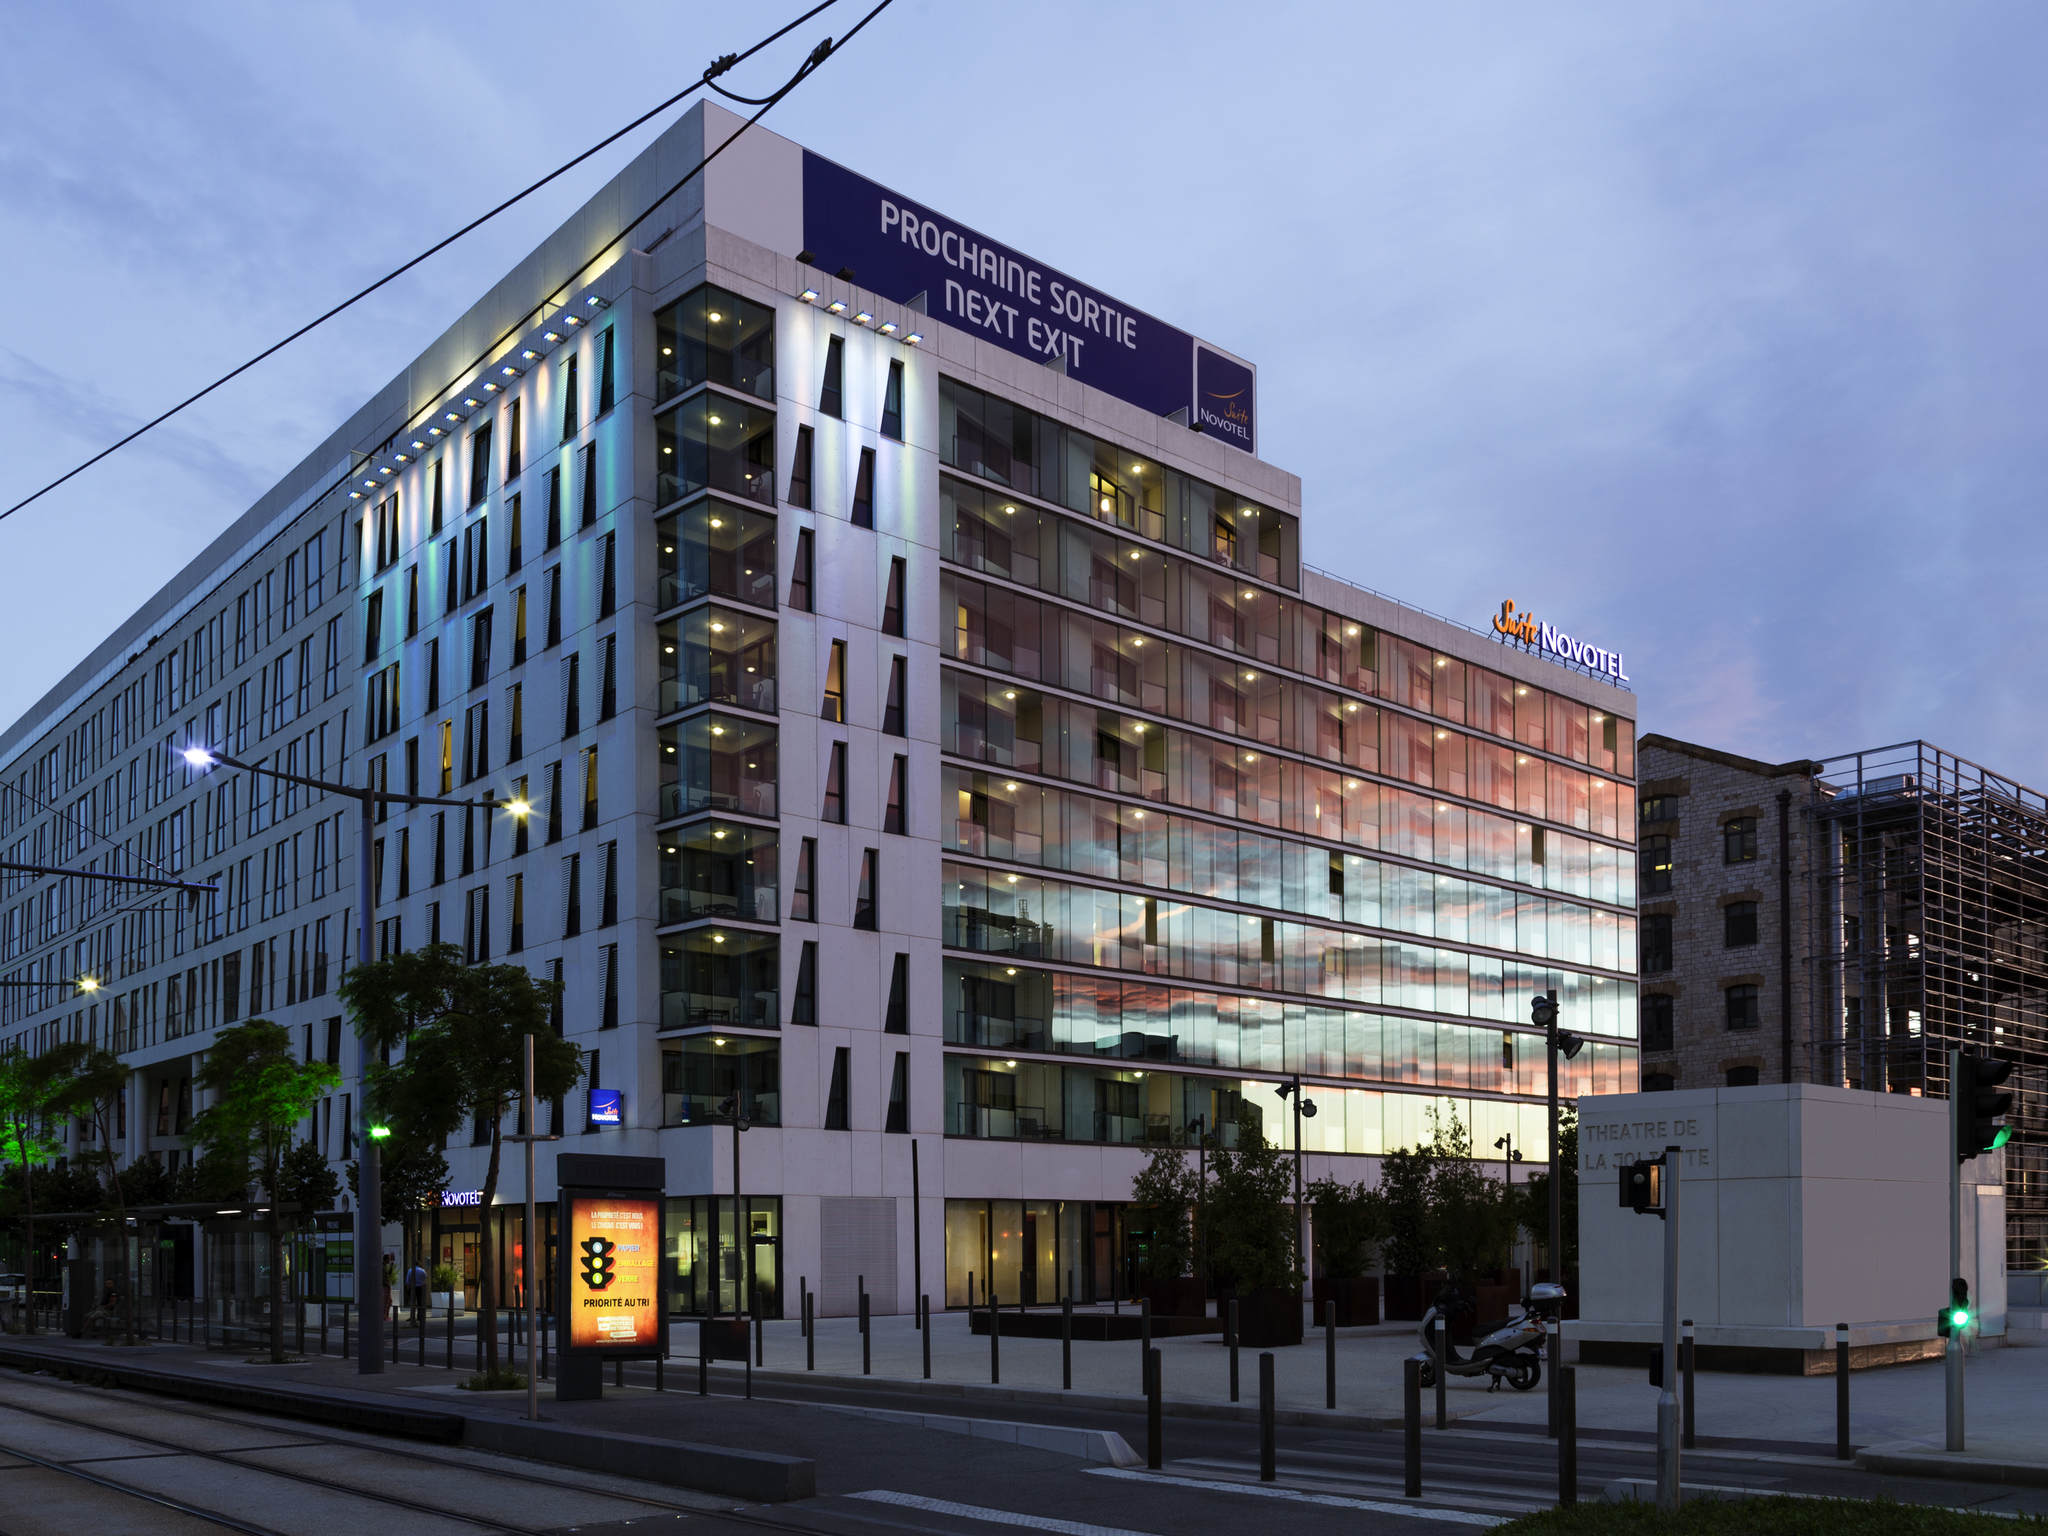 Hotel – Novotel Suites Marsella Centro Euromed